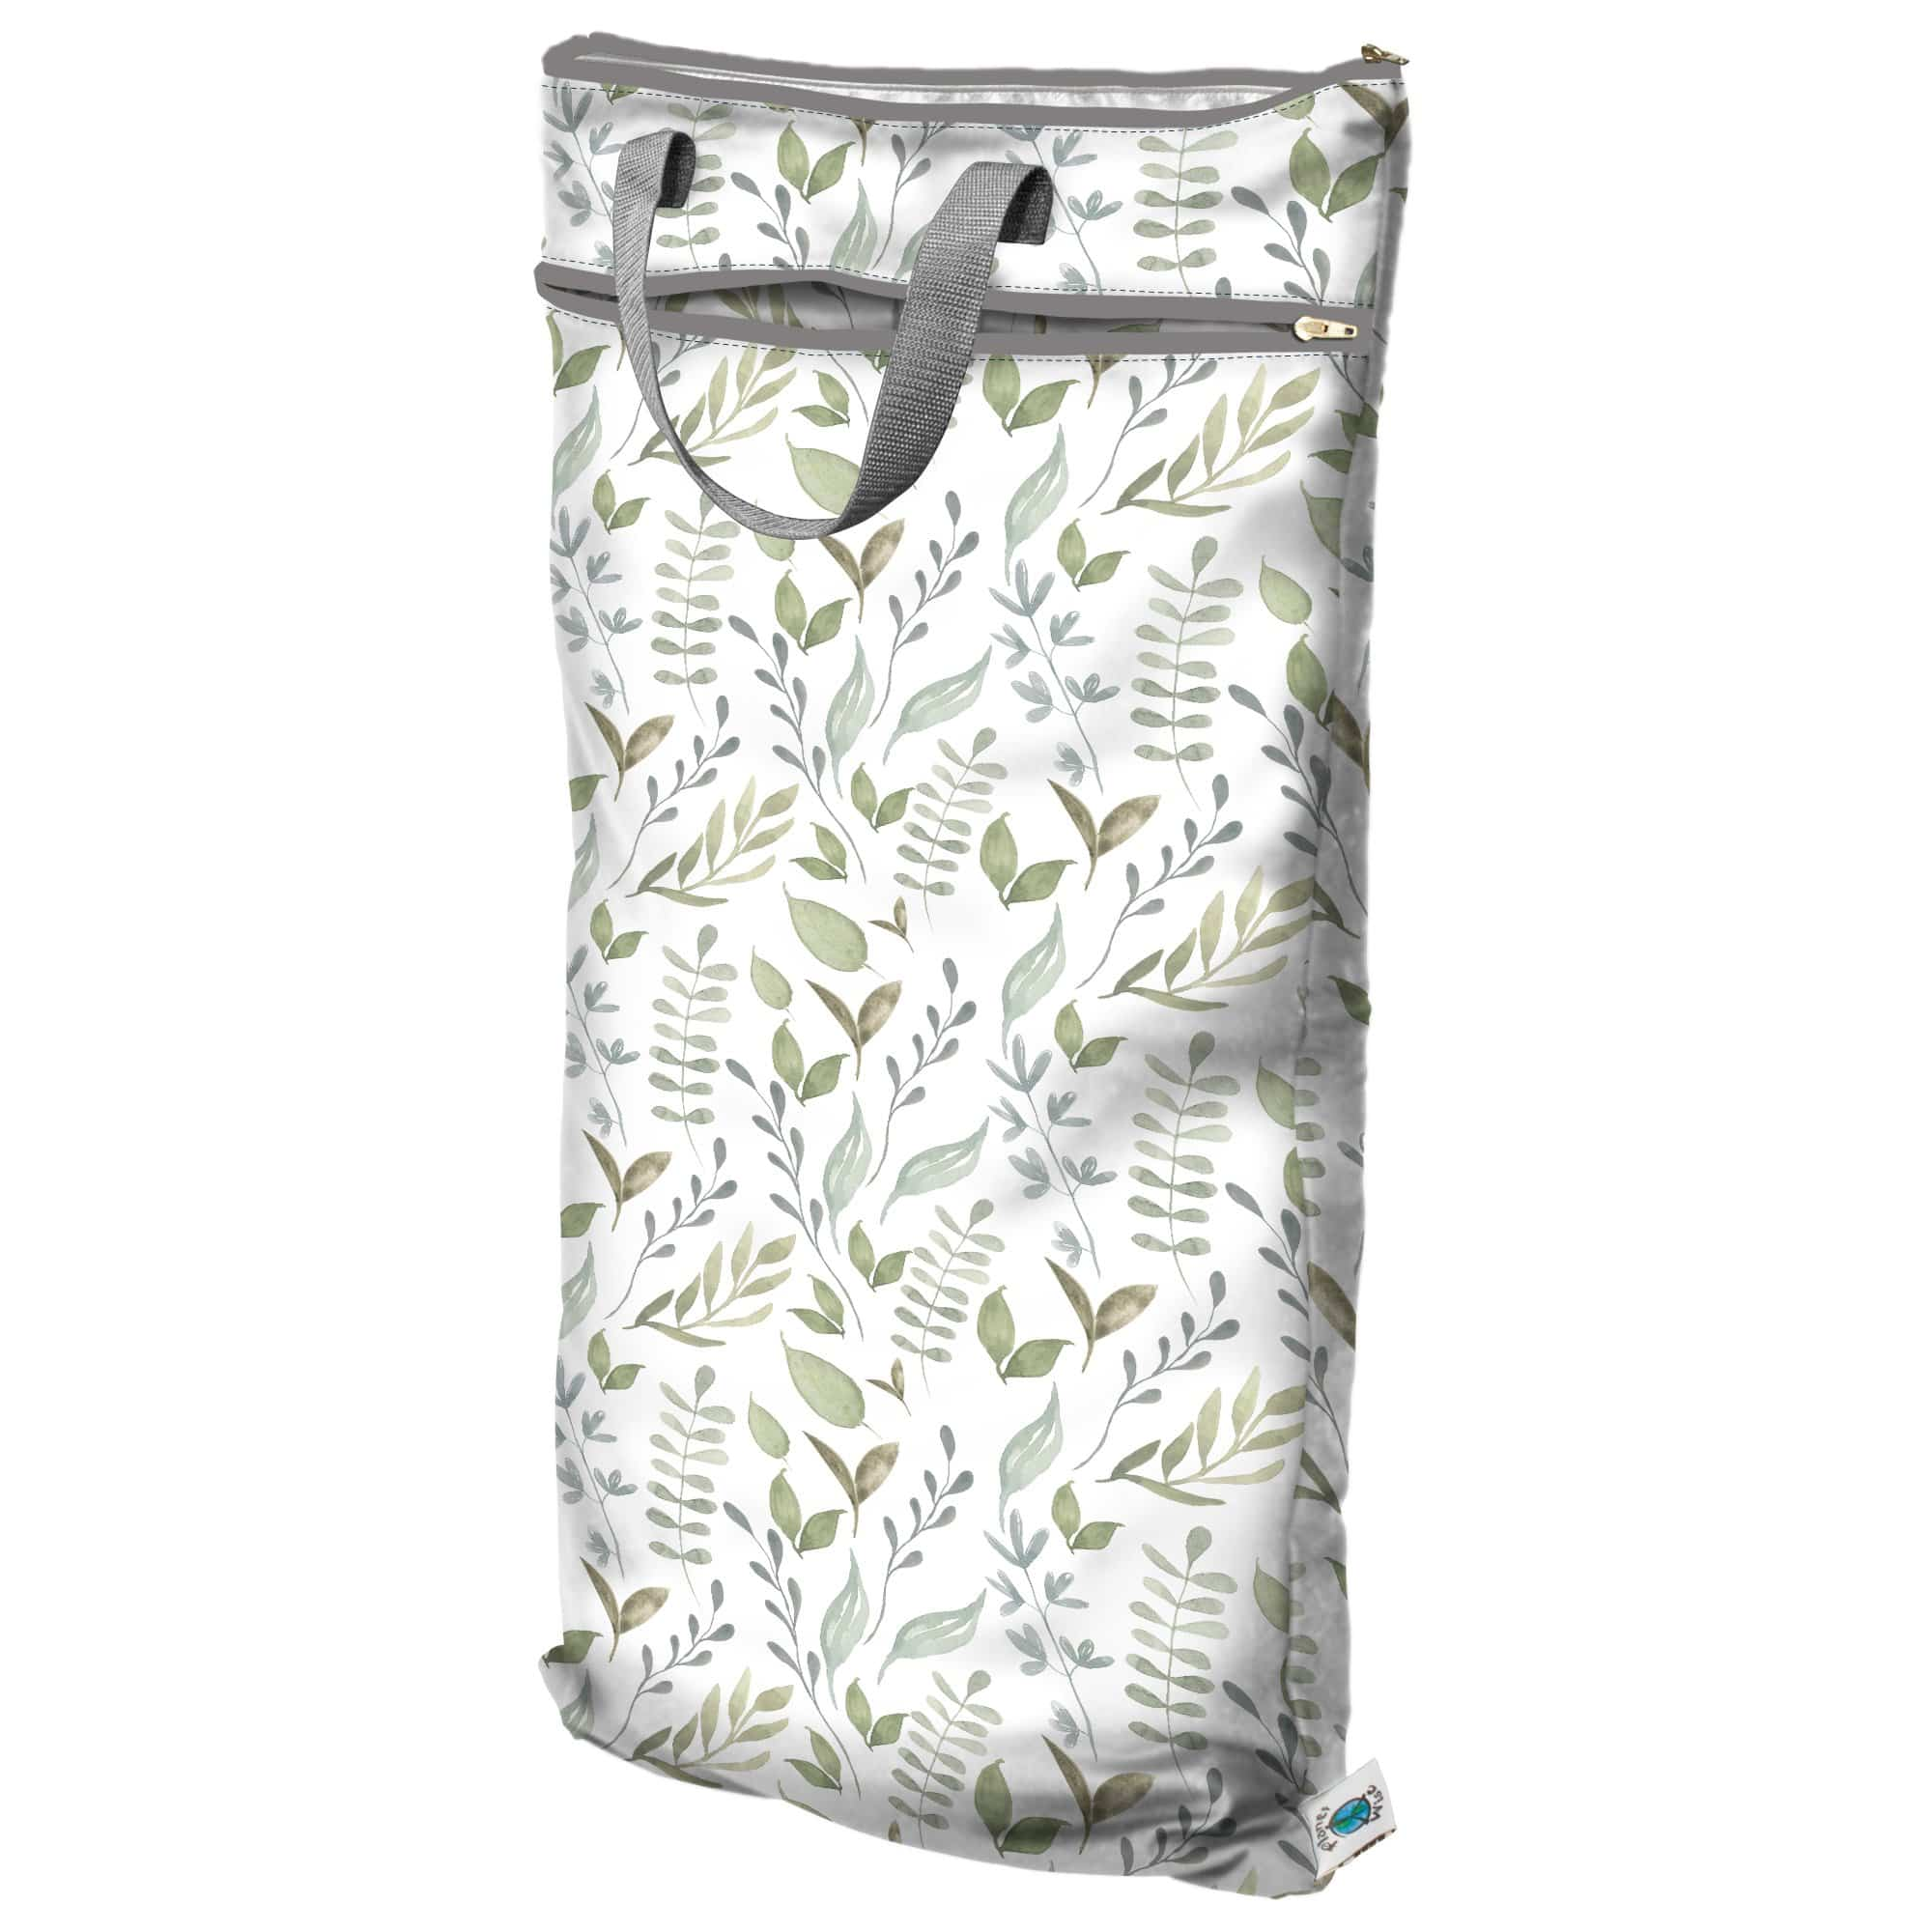 Planet Wise Performance Hanging Wet/Dry Bag - Beleaf in Yourself